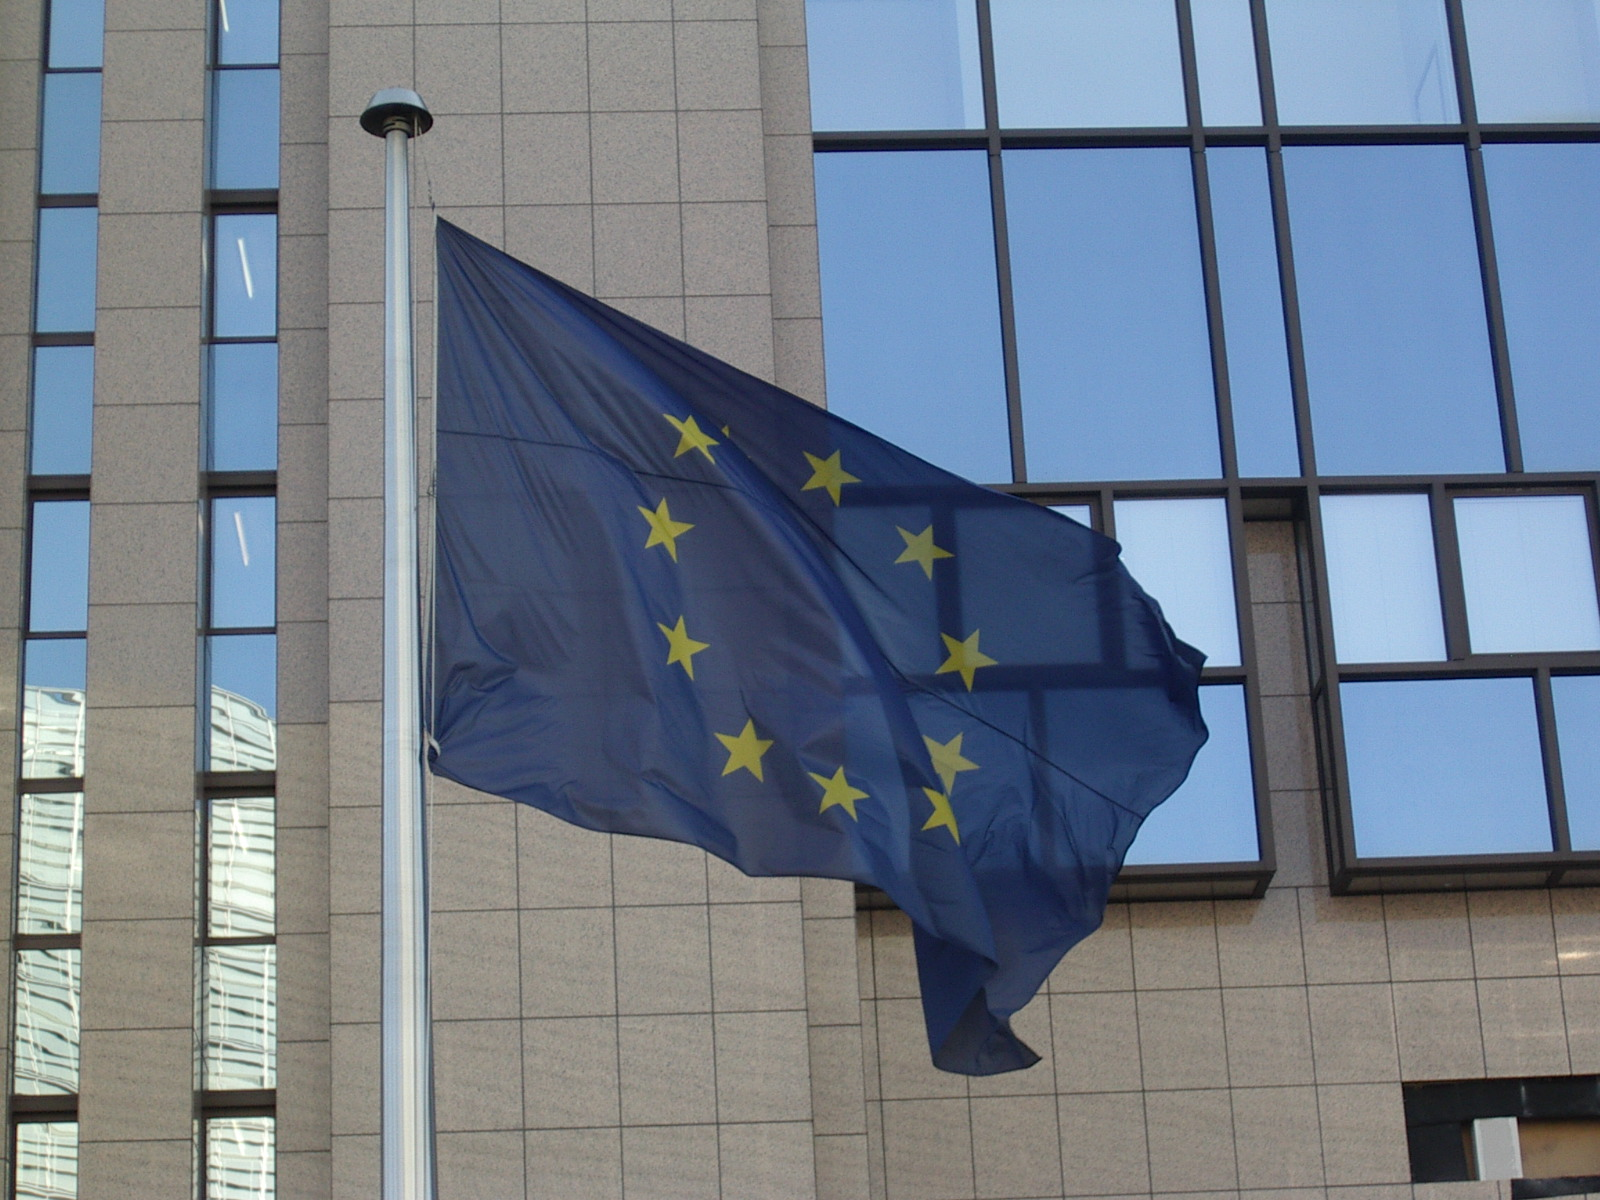 EUFA welcomes today's draft guidelines on the future trade agreement